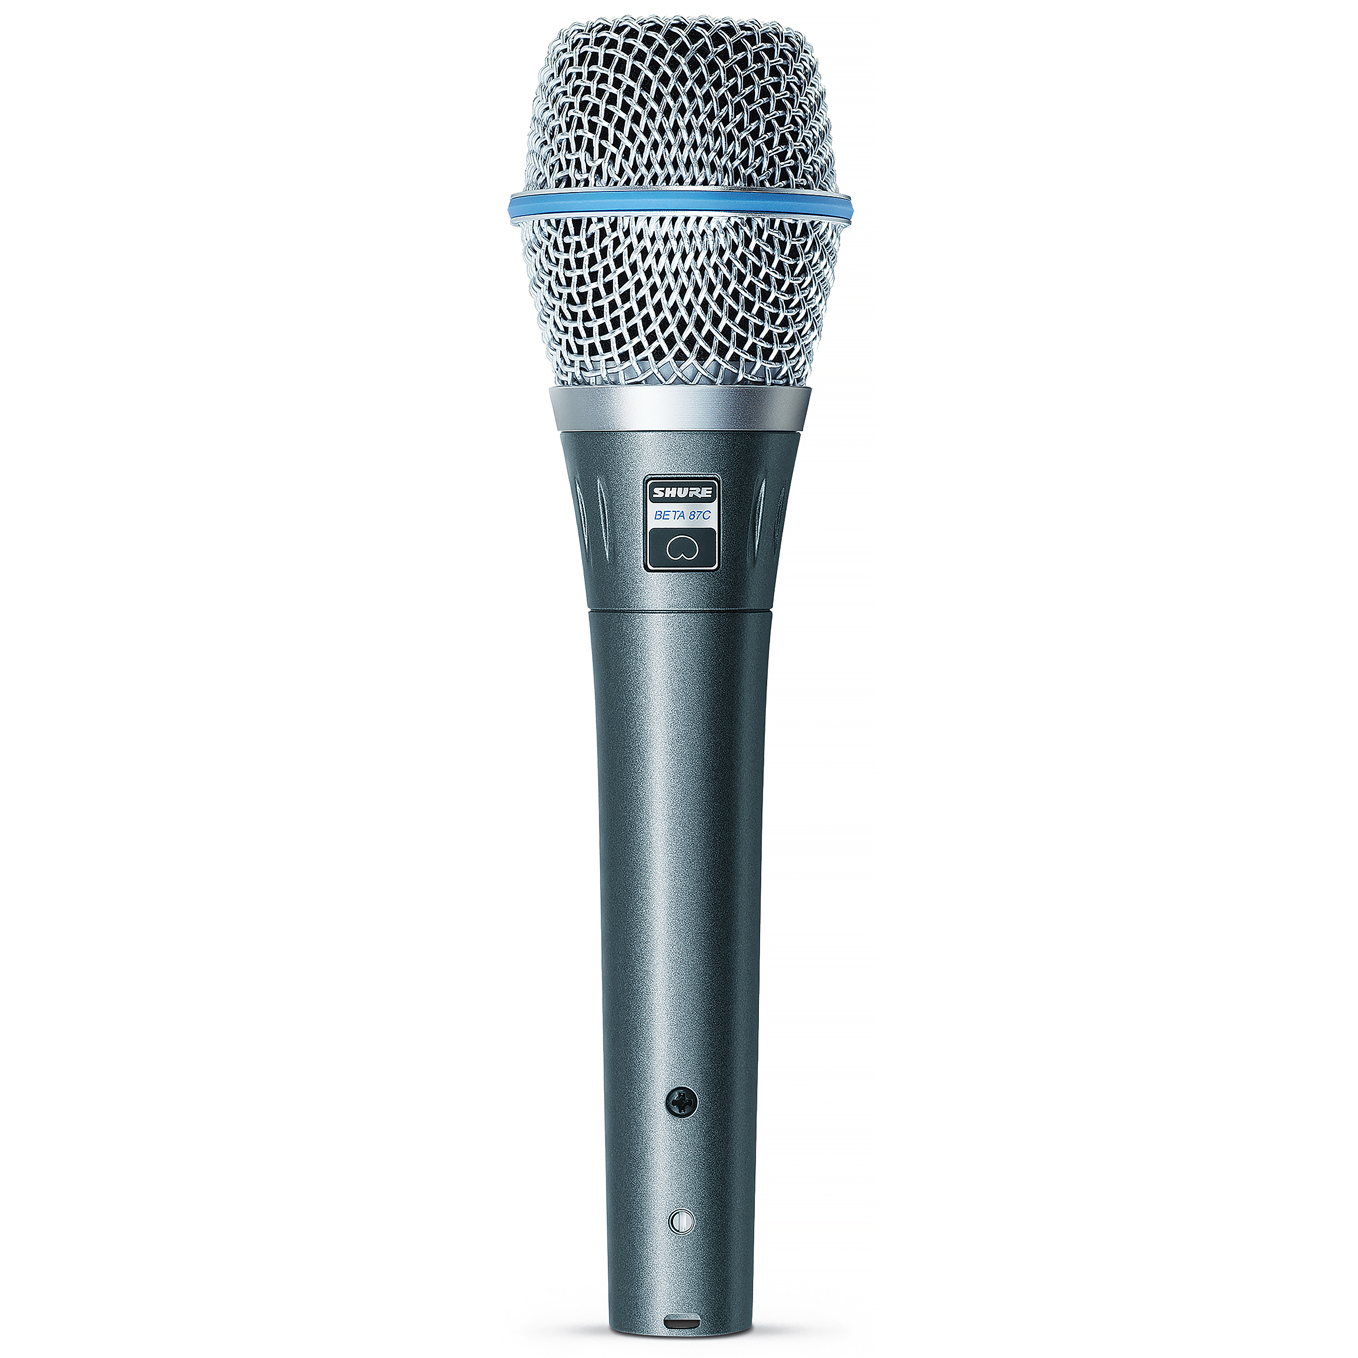 Shure Beta 87c Vocal Cardioid Condenser Microphone